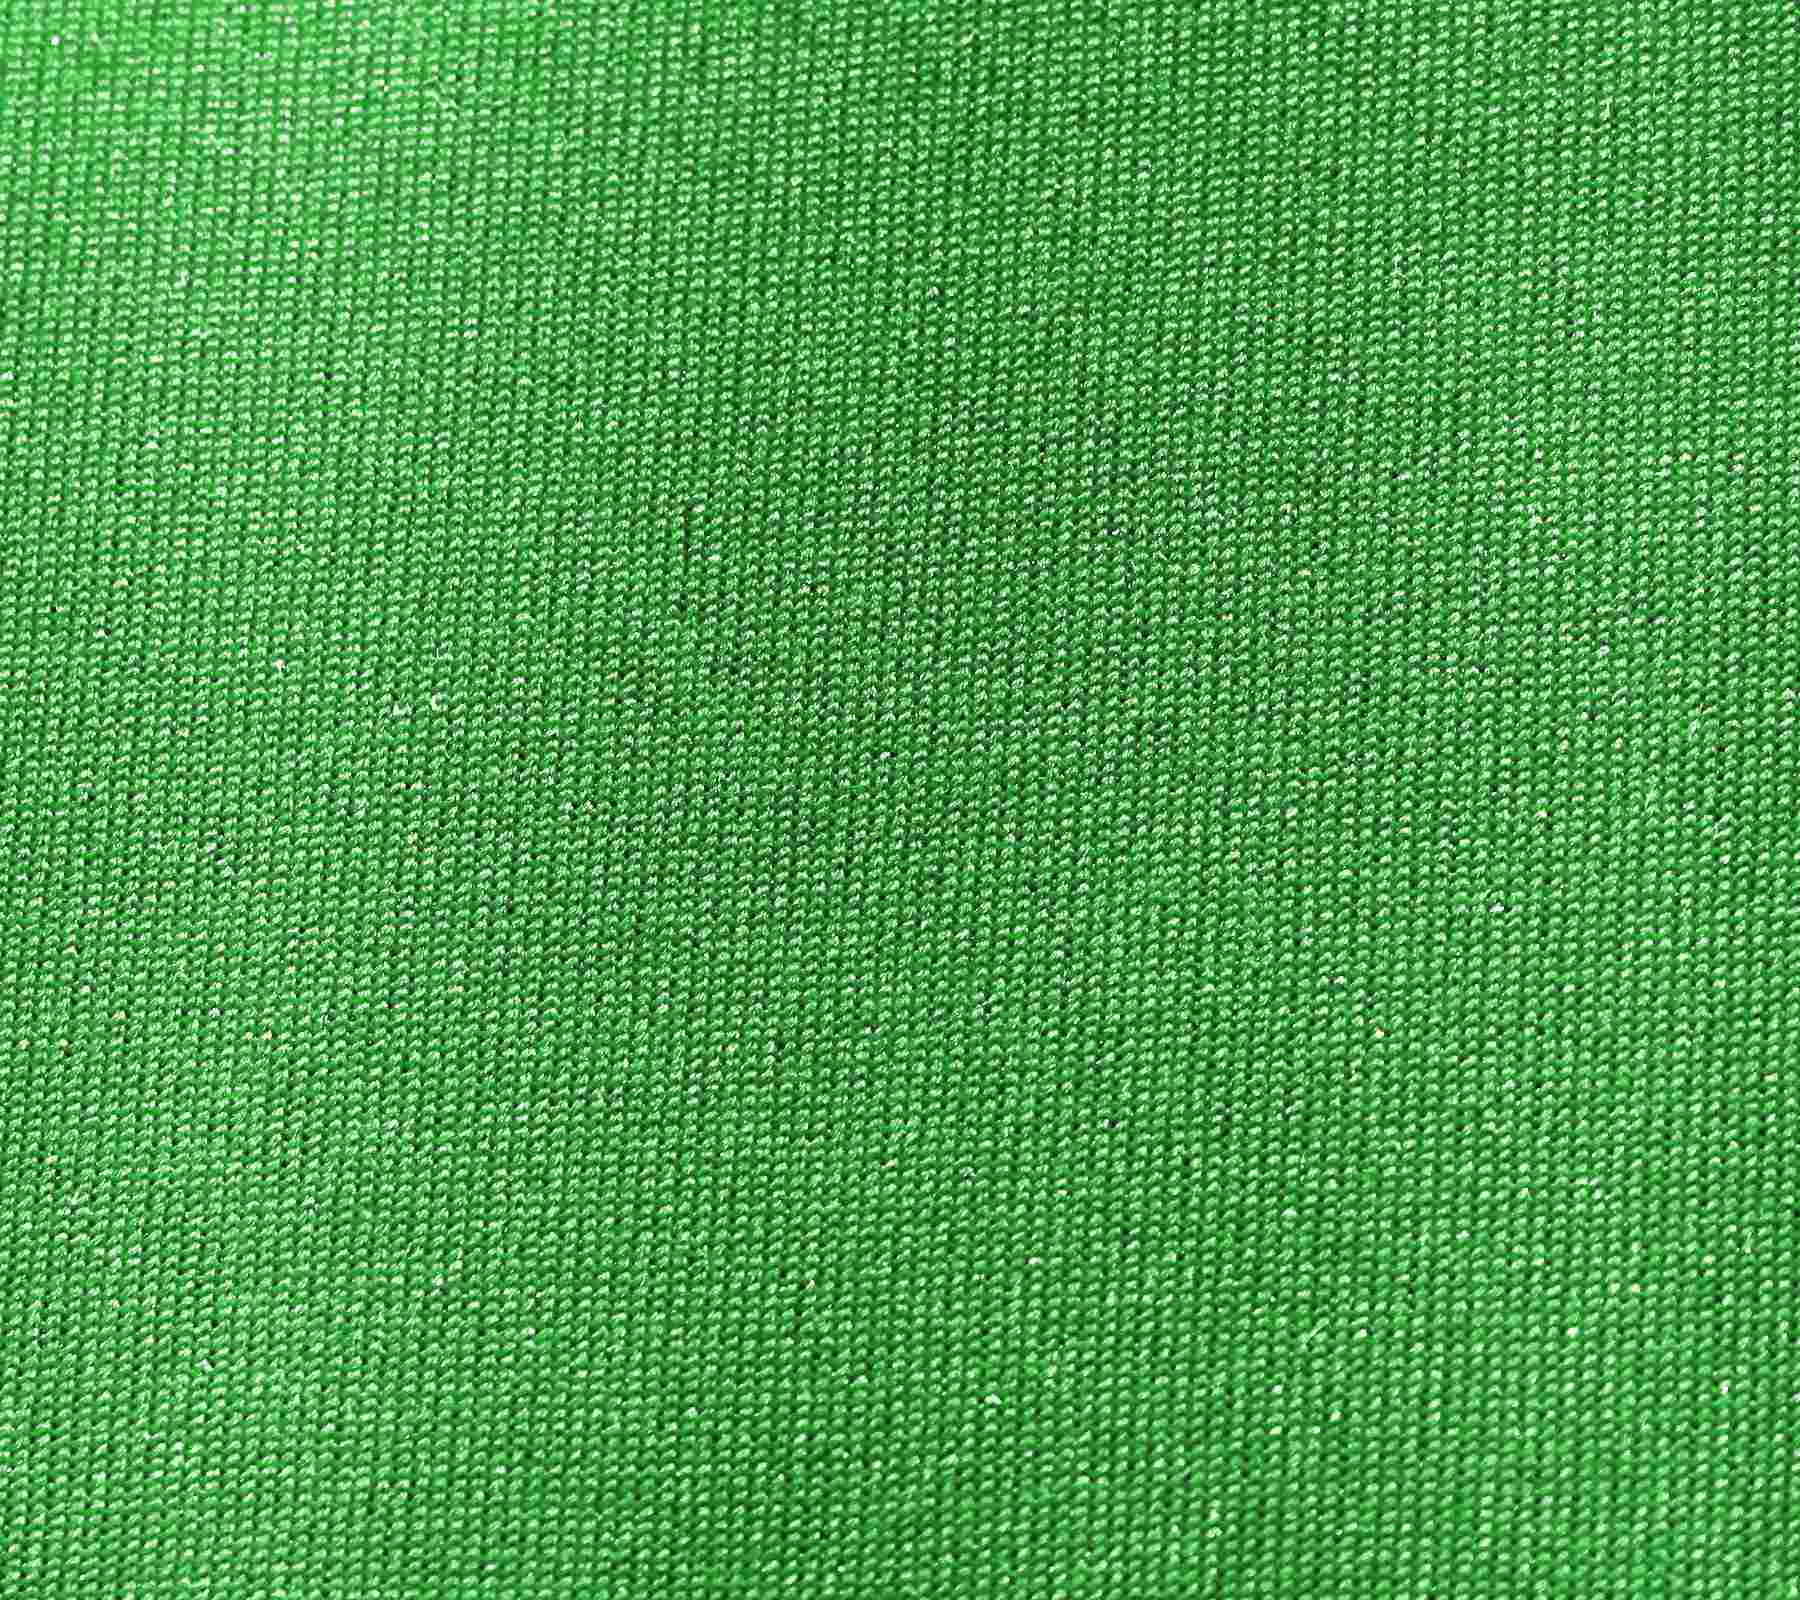 Green woven nylon fabric background image wallpaper or for Green fabric